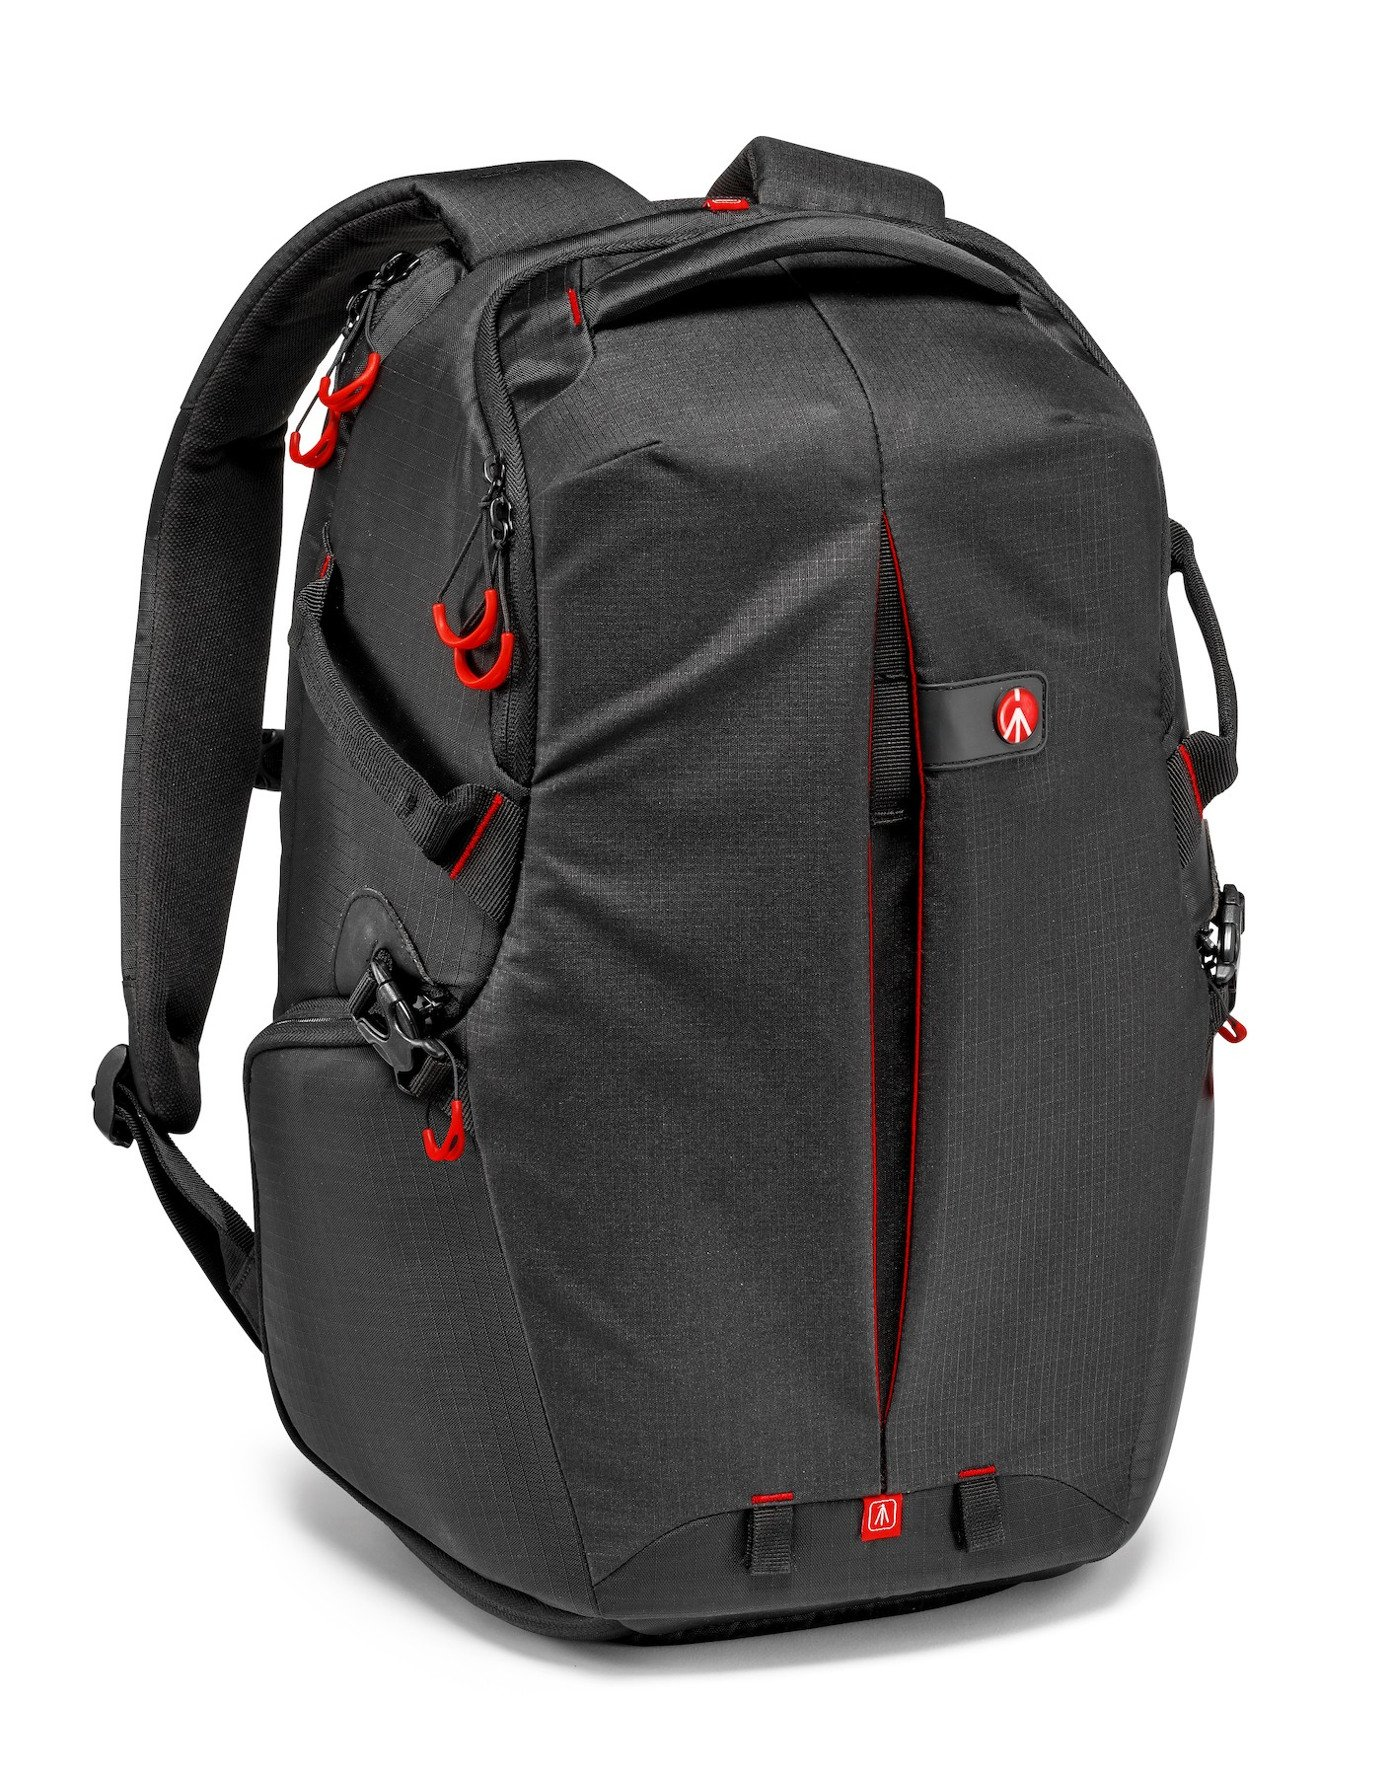 Pro Light Reverse Access Backpack RedBee-210 for DSLR/Camcorder